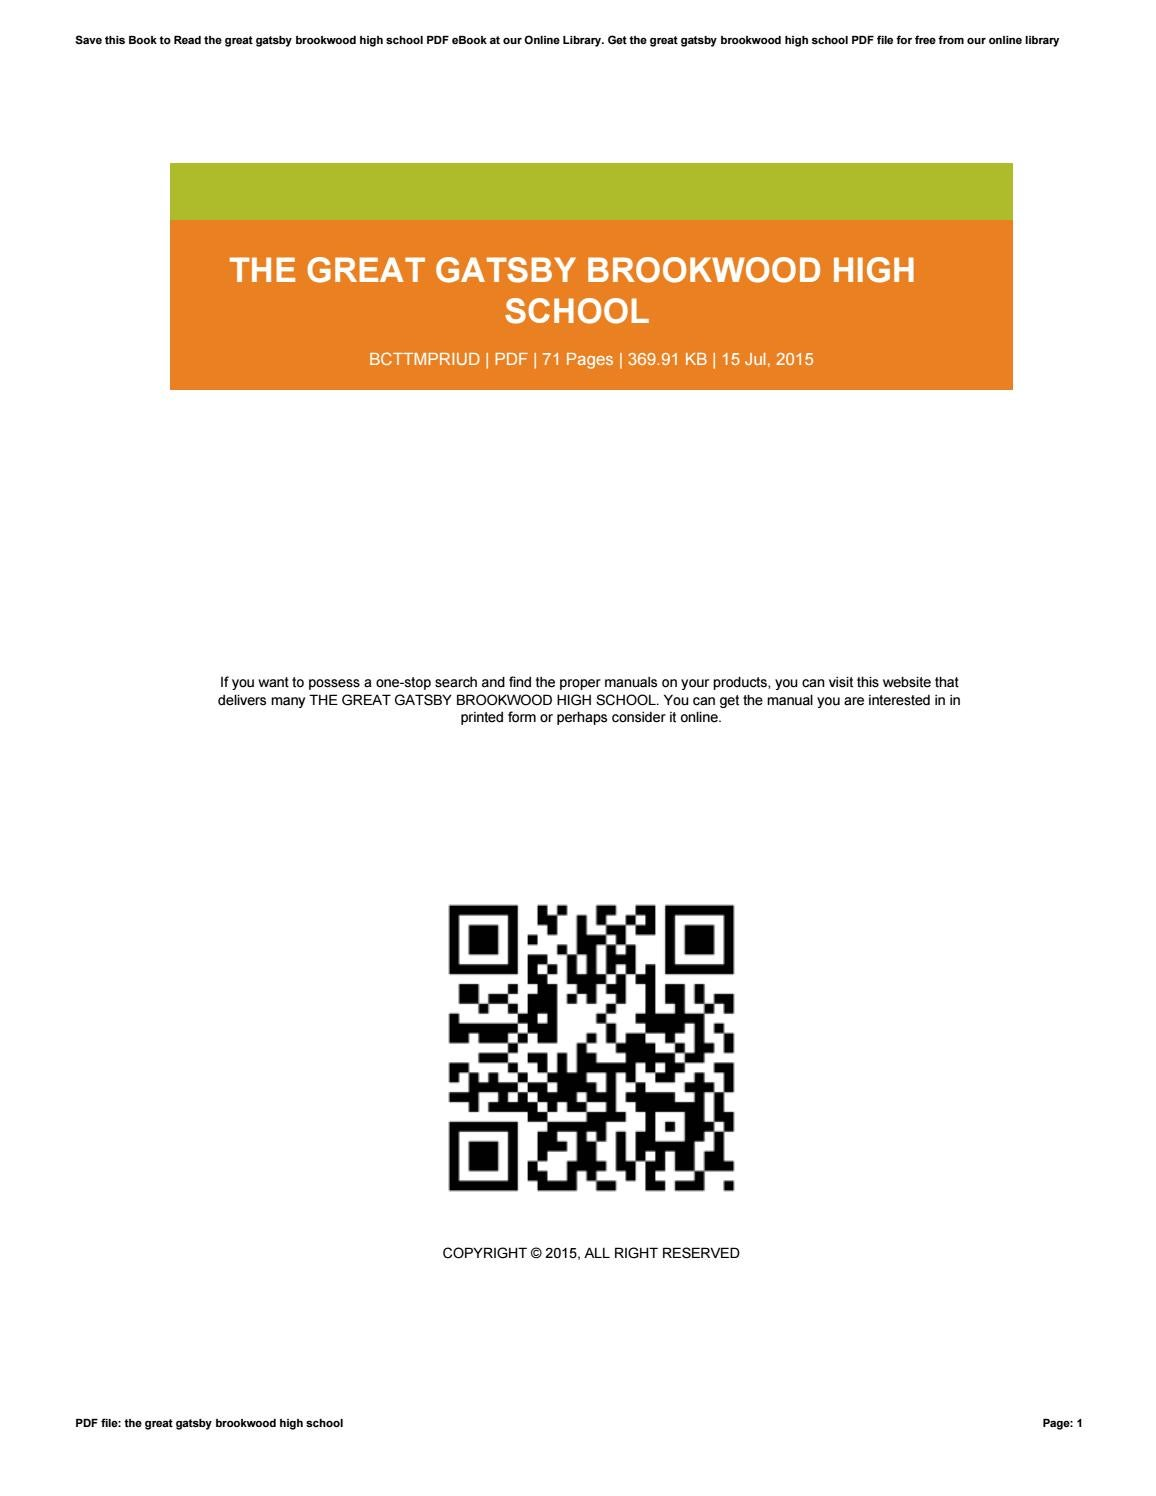 The great gatsby full text pdf dolapgnetband the fandeluxe Gallery